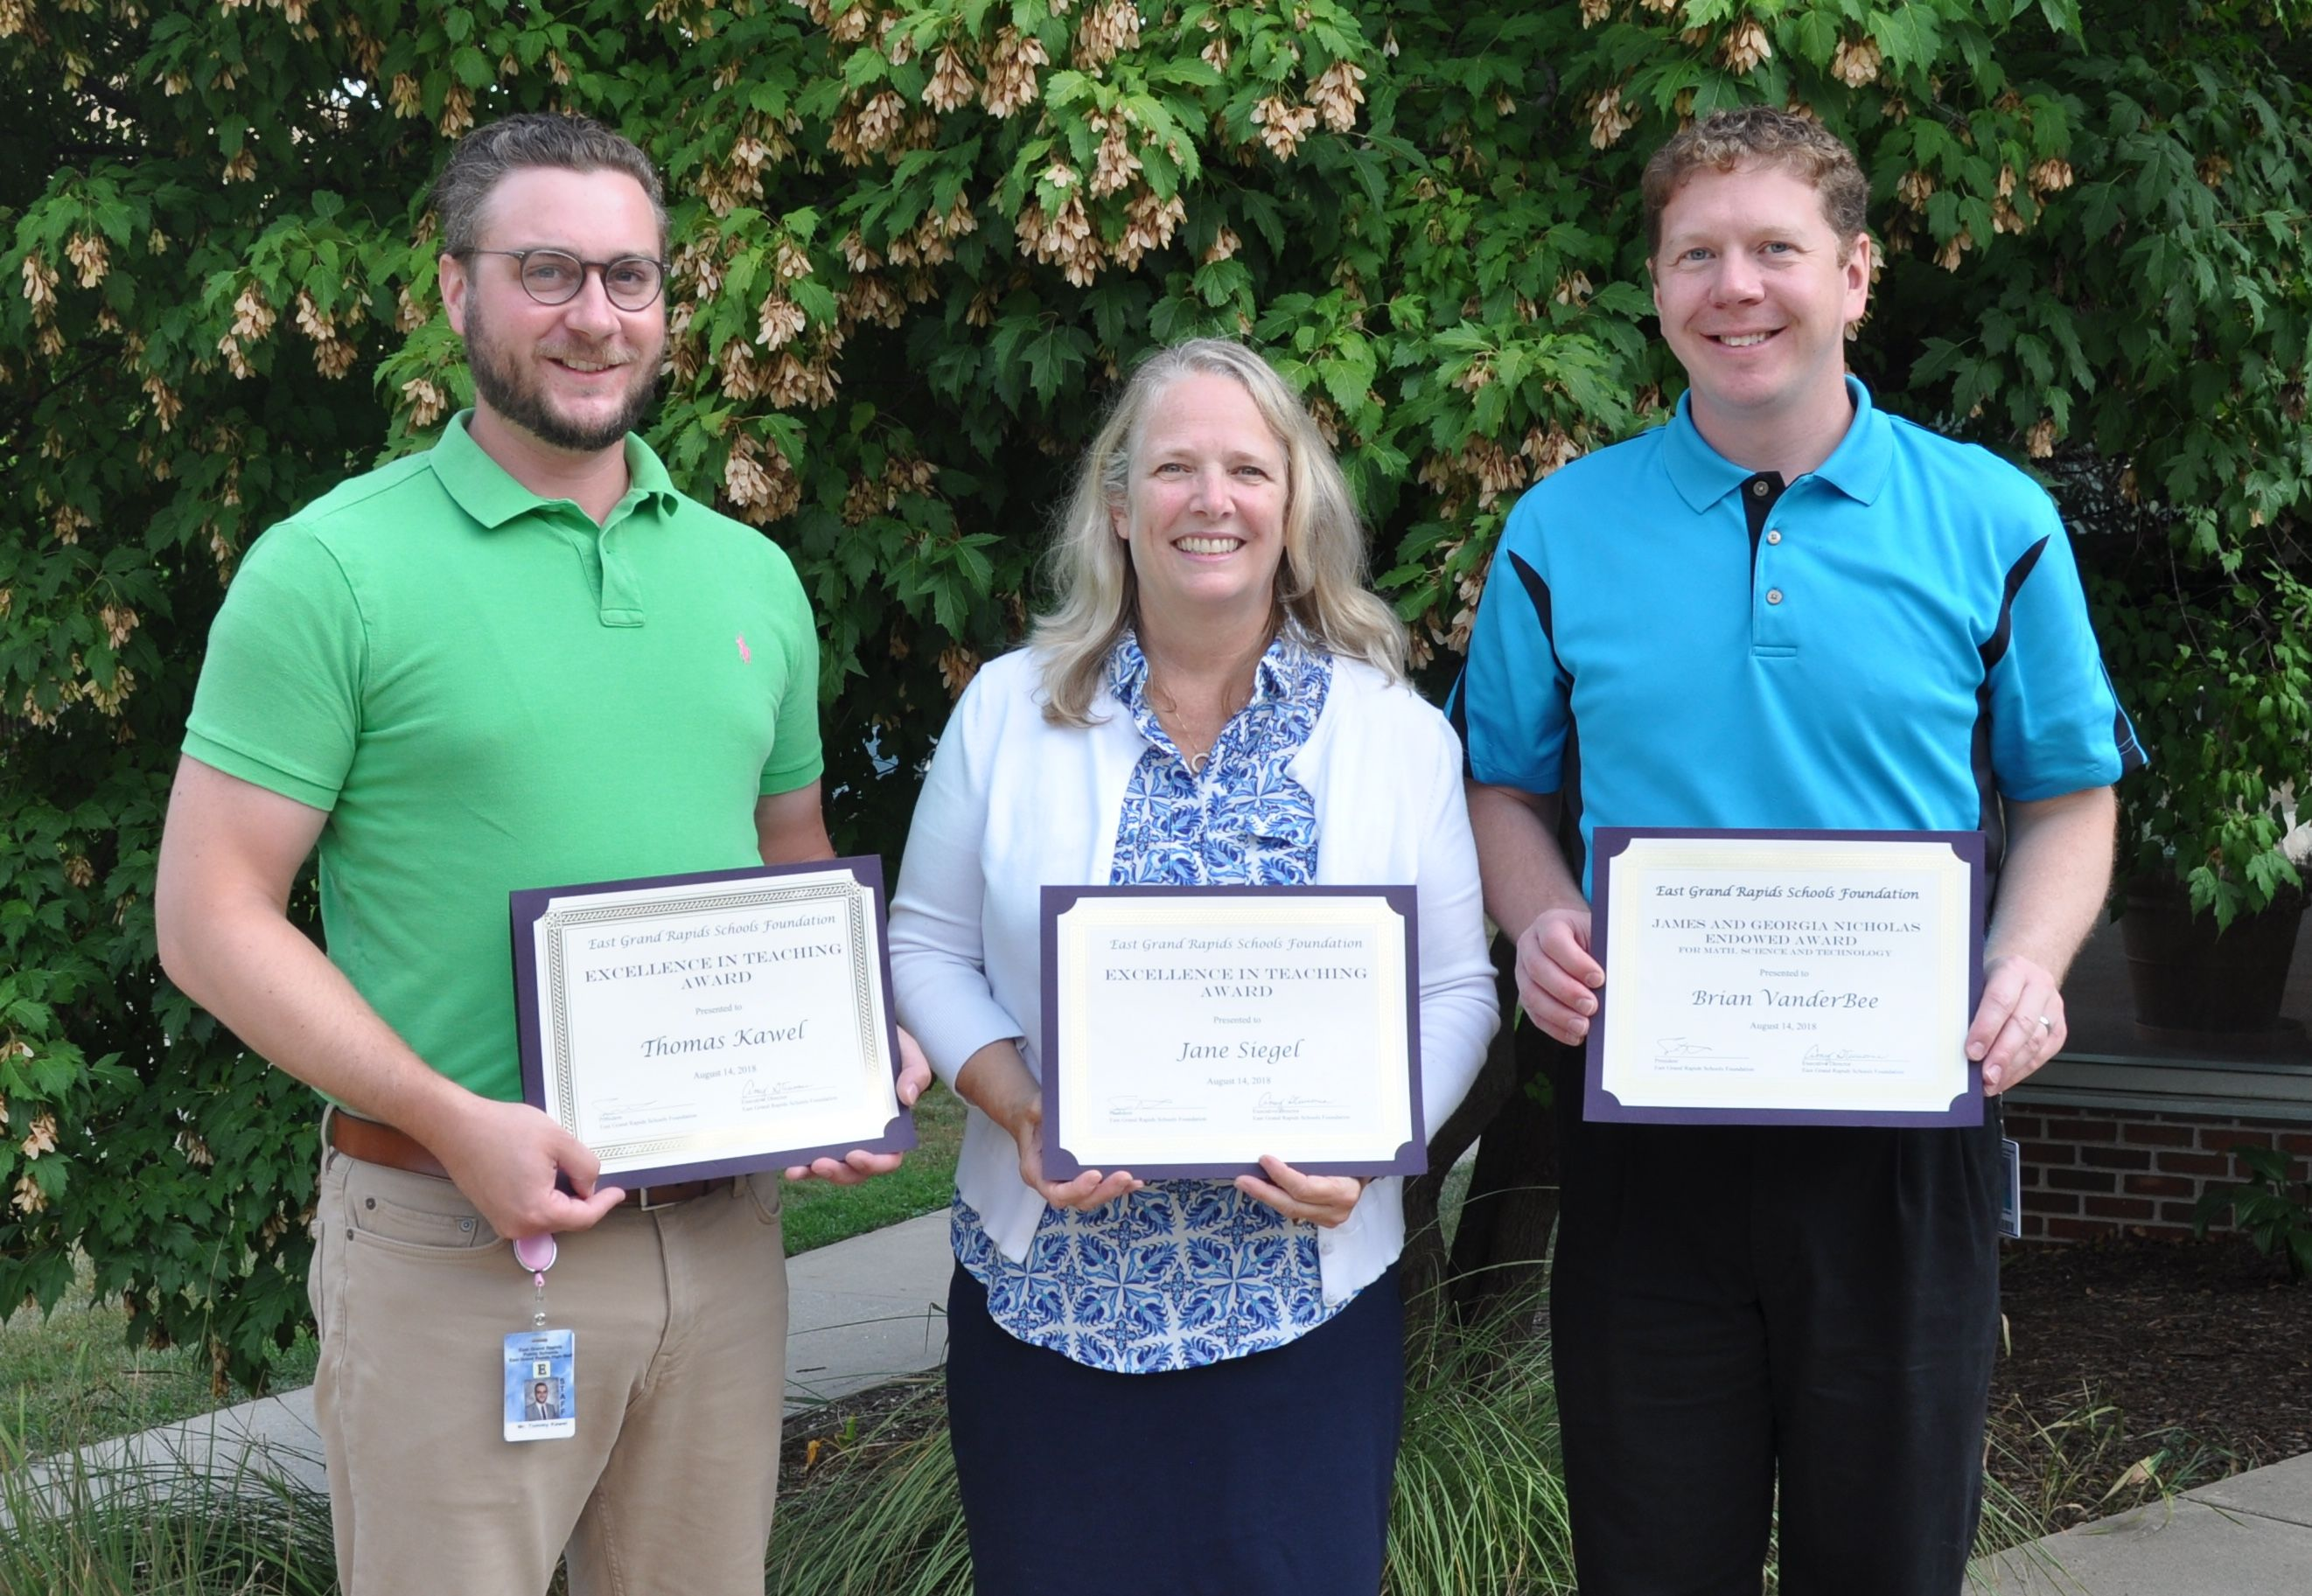 Excellence in Teaching, Nicholas Award Winners